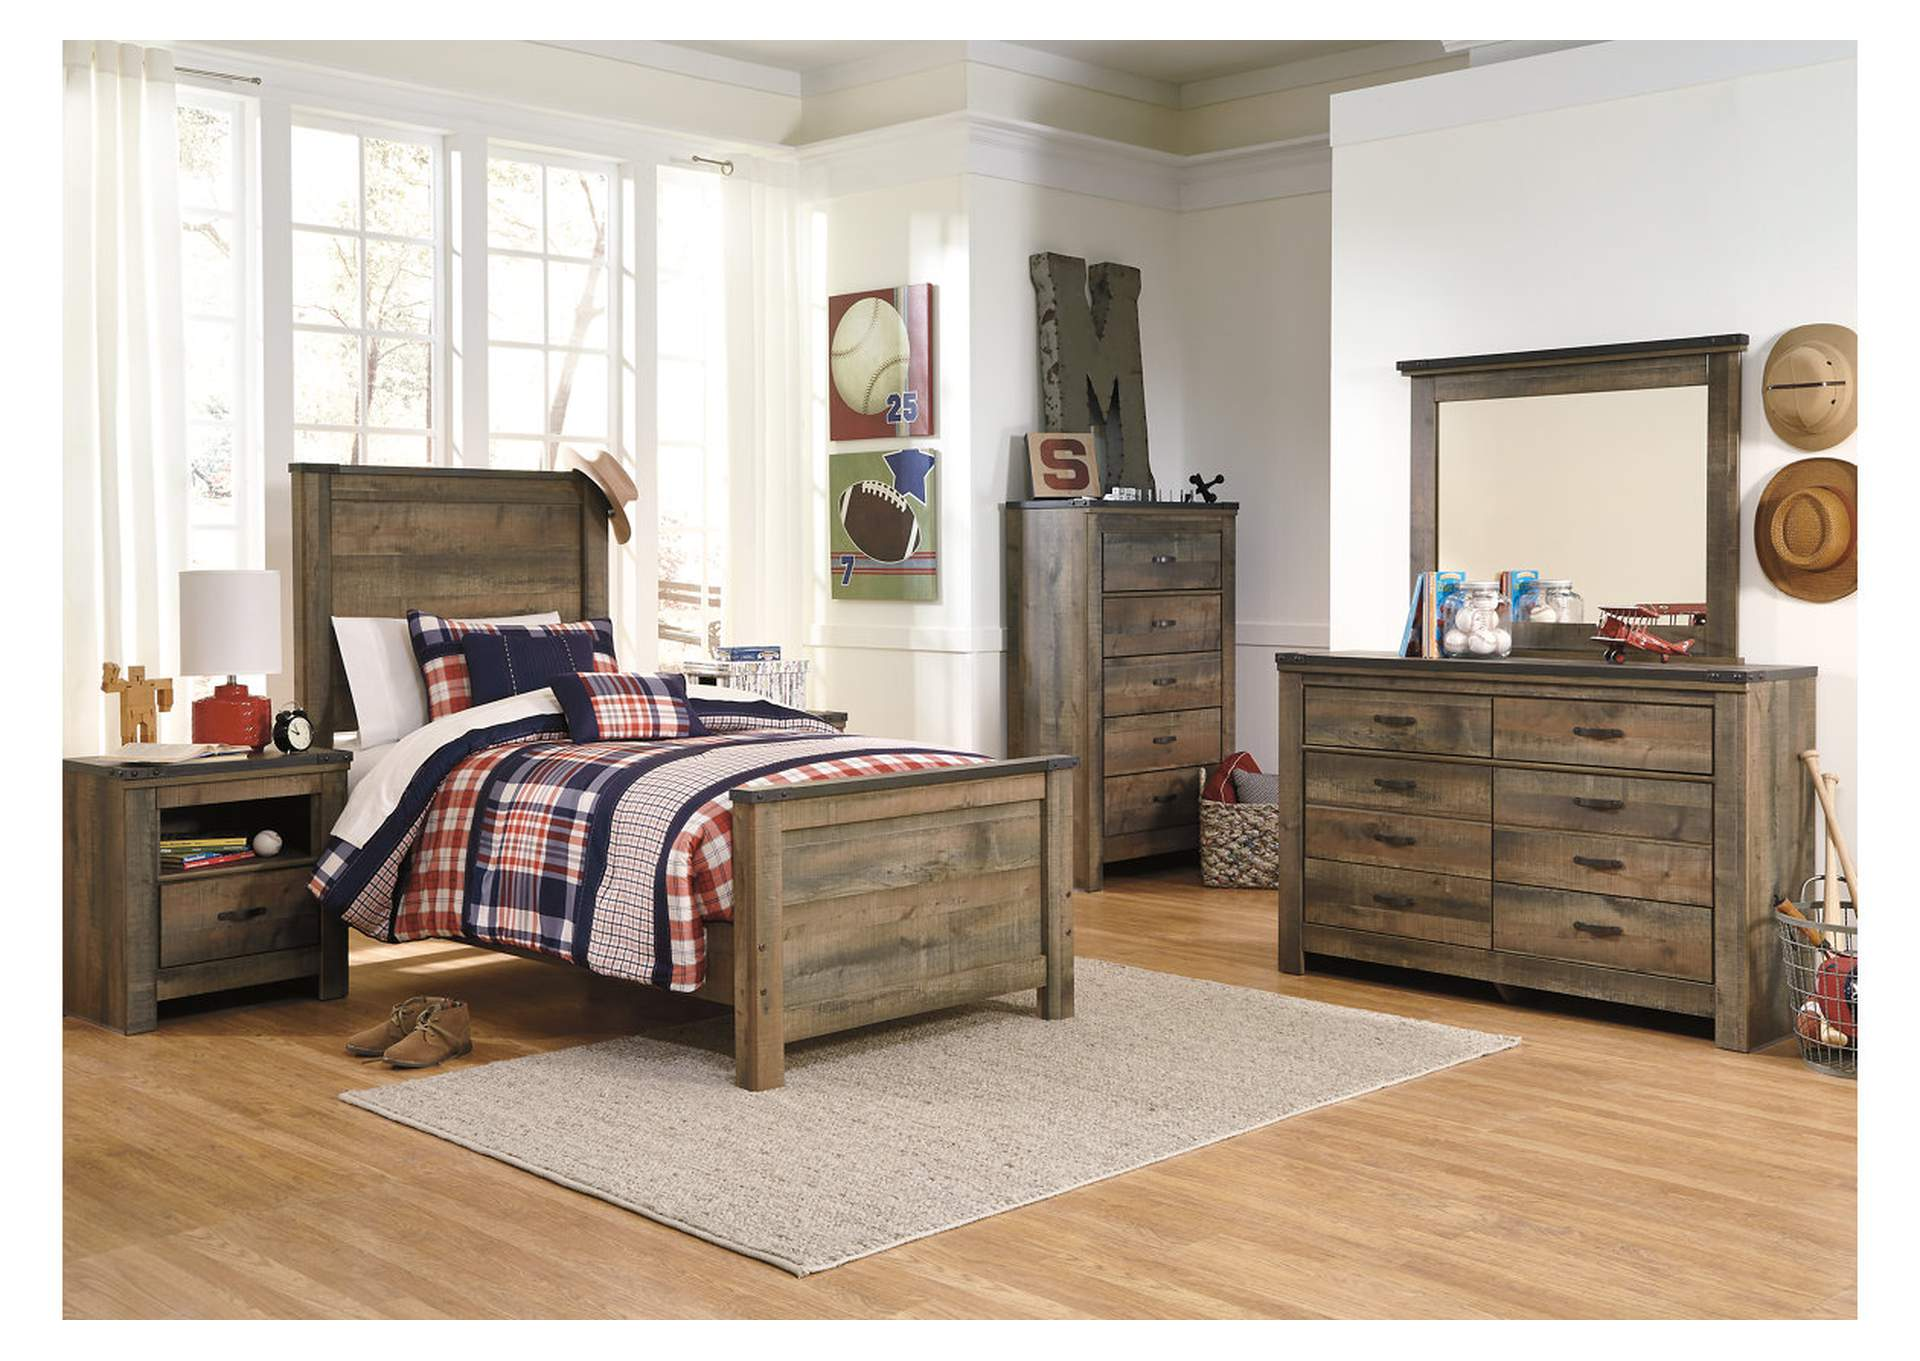 Trinell Brown Twin Panel Bed w/Dresser, Mirror, Drawer Chest & Nightstand,Signature Design By Ashley